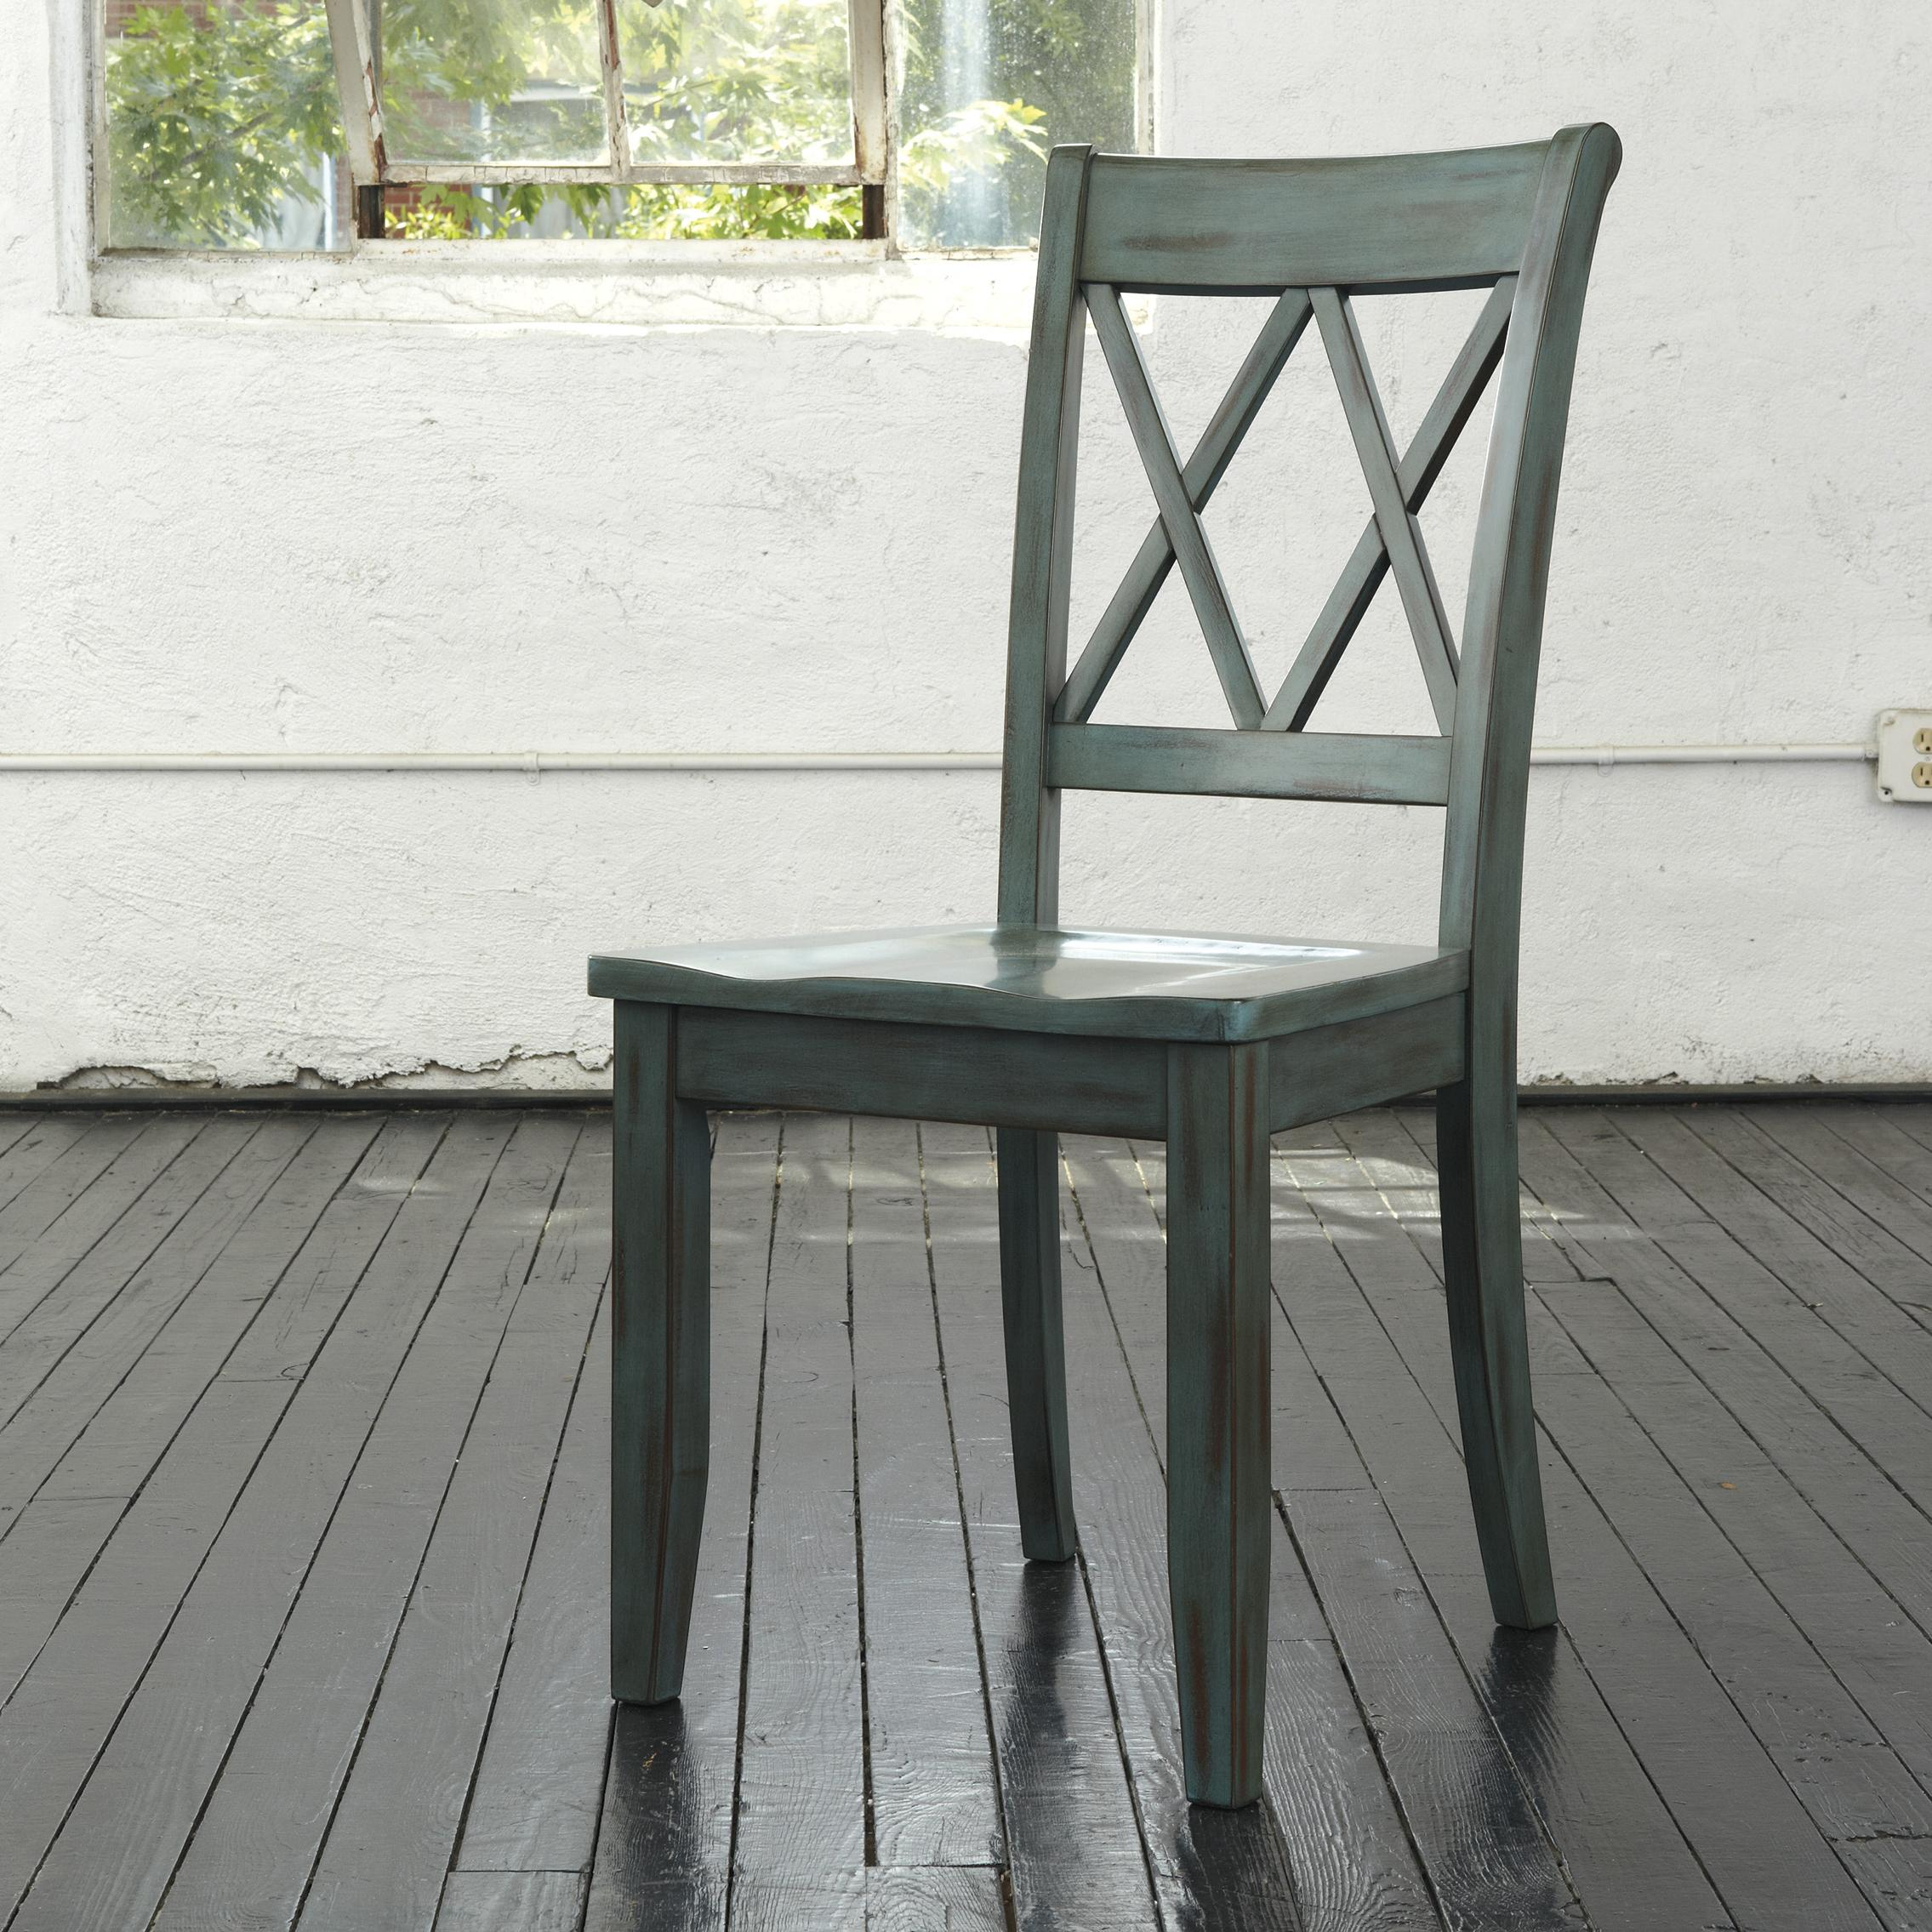 Green Dining Room Chairs: Antique Blue/Green Dining Room Side Chair By Signature